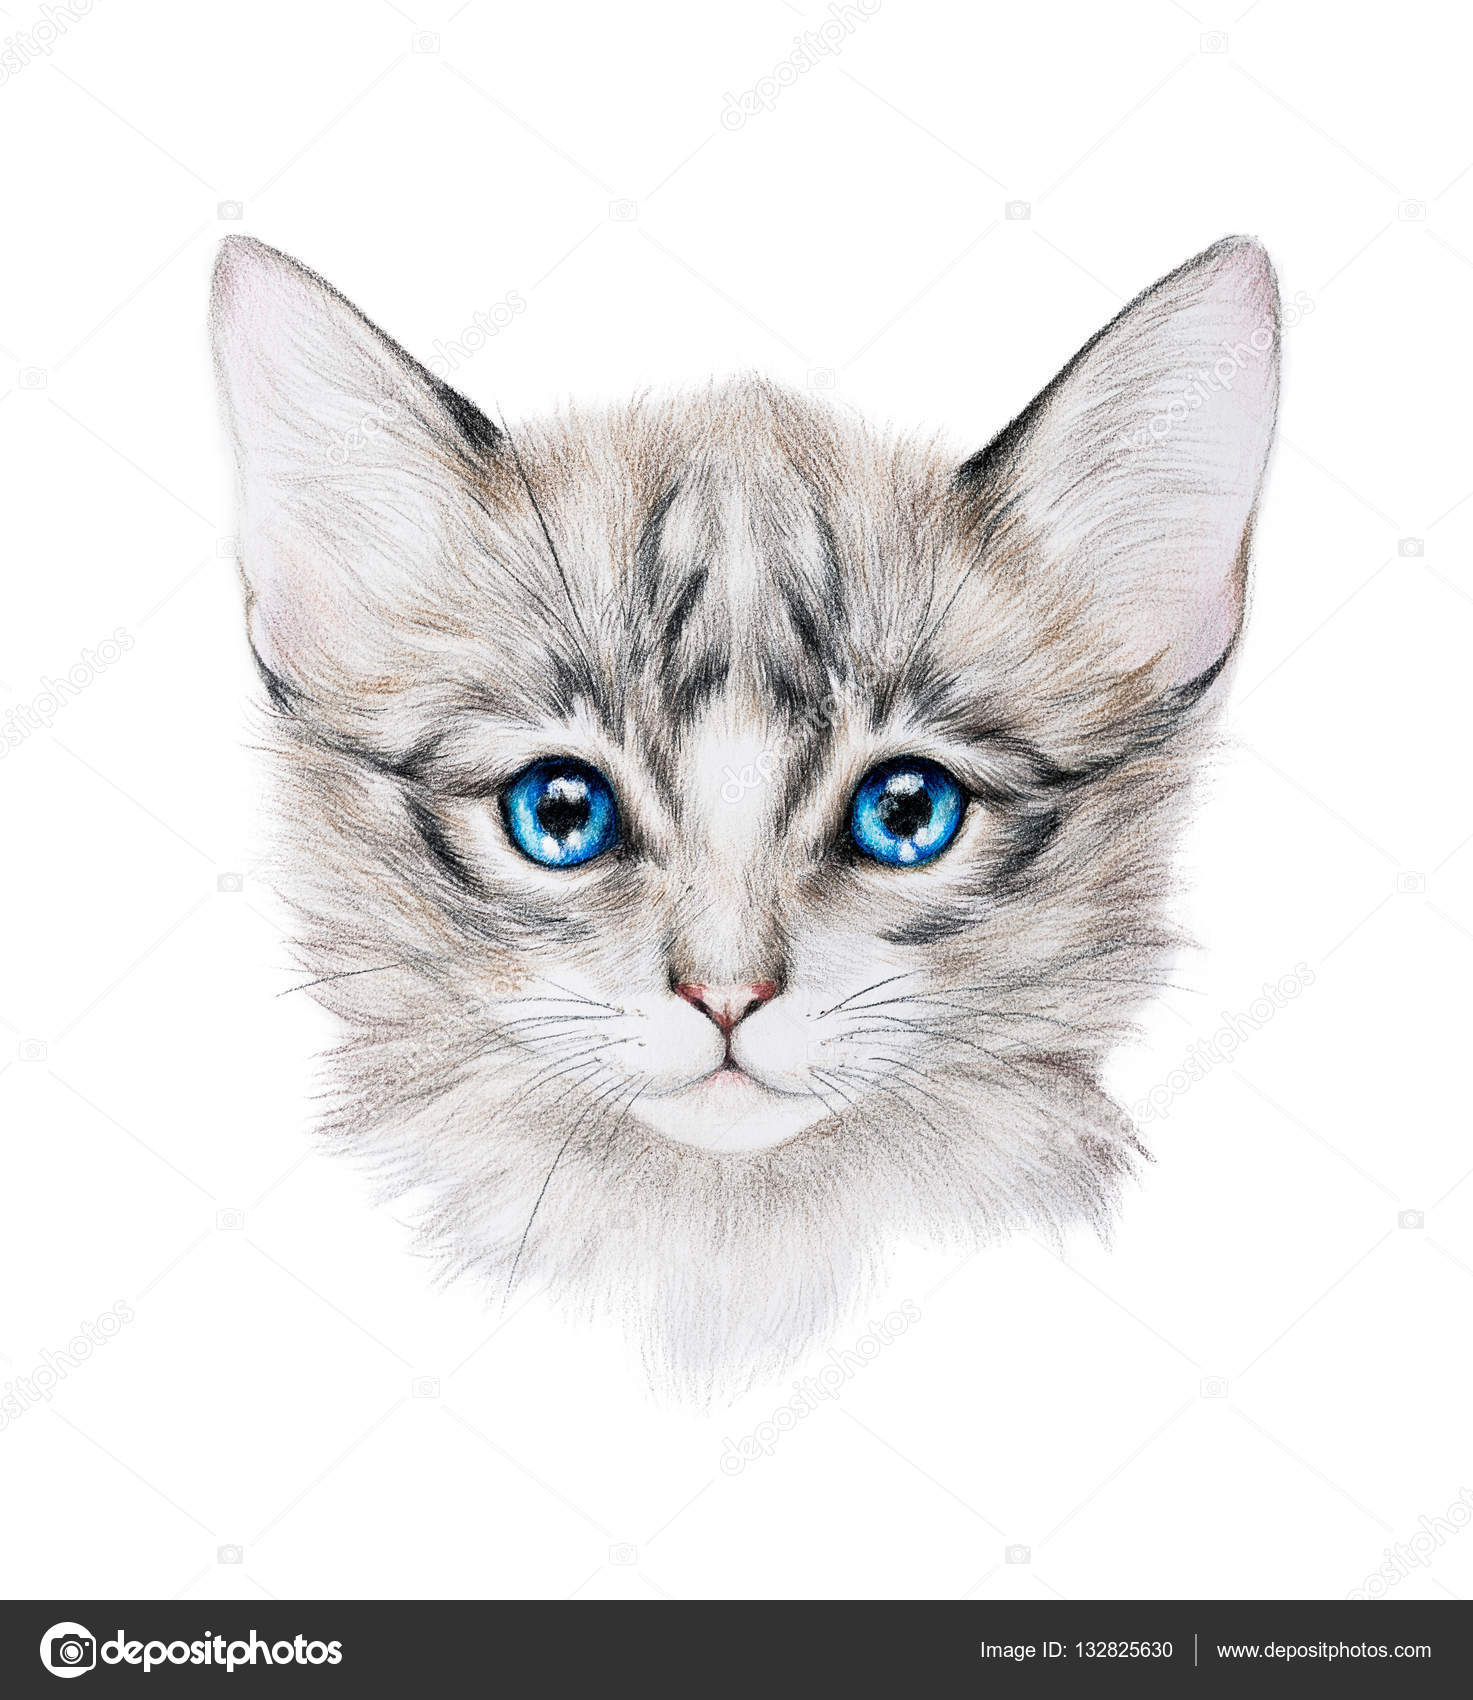 Pencil drawing of a grey kitten stock photo